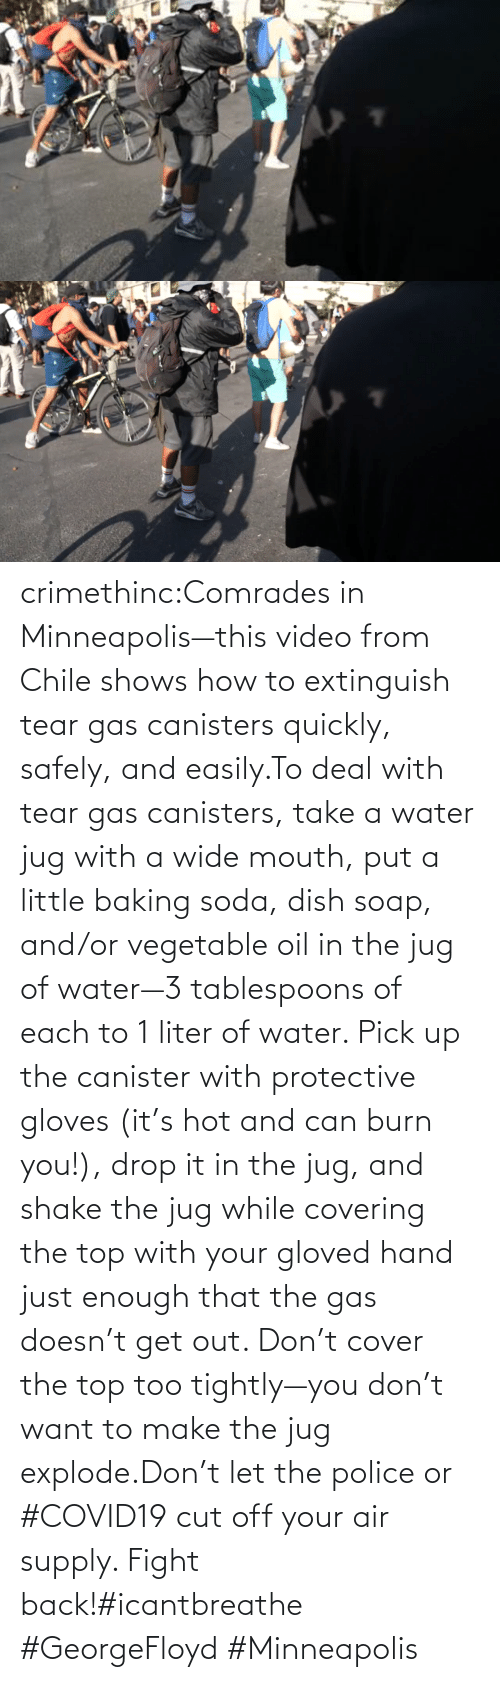 get out: crimethinc:Comrades in Minneapolis—this video from Chile shows how to extinguish tear gas canisters quickly, safely, and easily.To deal with tear gas canisters, take a water jug with a wide mouth, put a little baking soda, dish soap, and/or vegetable oil in the jug of water—3 tablespoons of each to 1 liter of water. Pick up the canister with protective gloves (it's hot and can burn you!), drop it in the jug, and shake the jug while covering the top with your gloved hand just enough that the gas doesn't get out. Don't cover the top too tightly—you don't want to make the jug explode.Don't let the police or #COVID19 cut off your air supply. Fight back!#icantbreathe #GeorgeFloyd #Minneapolis